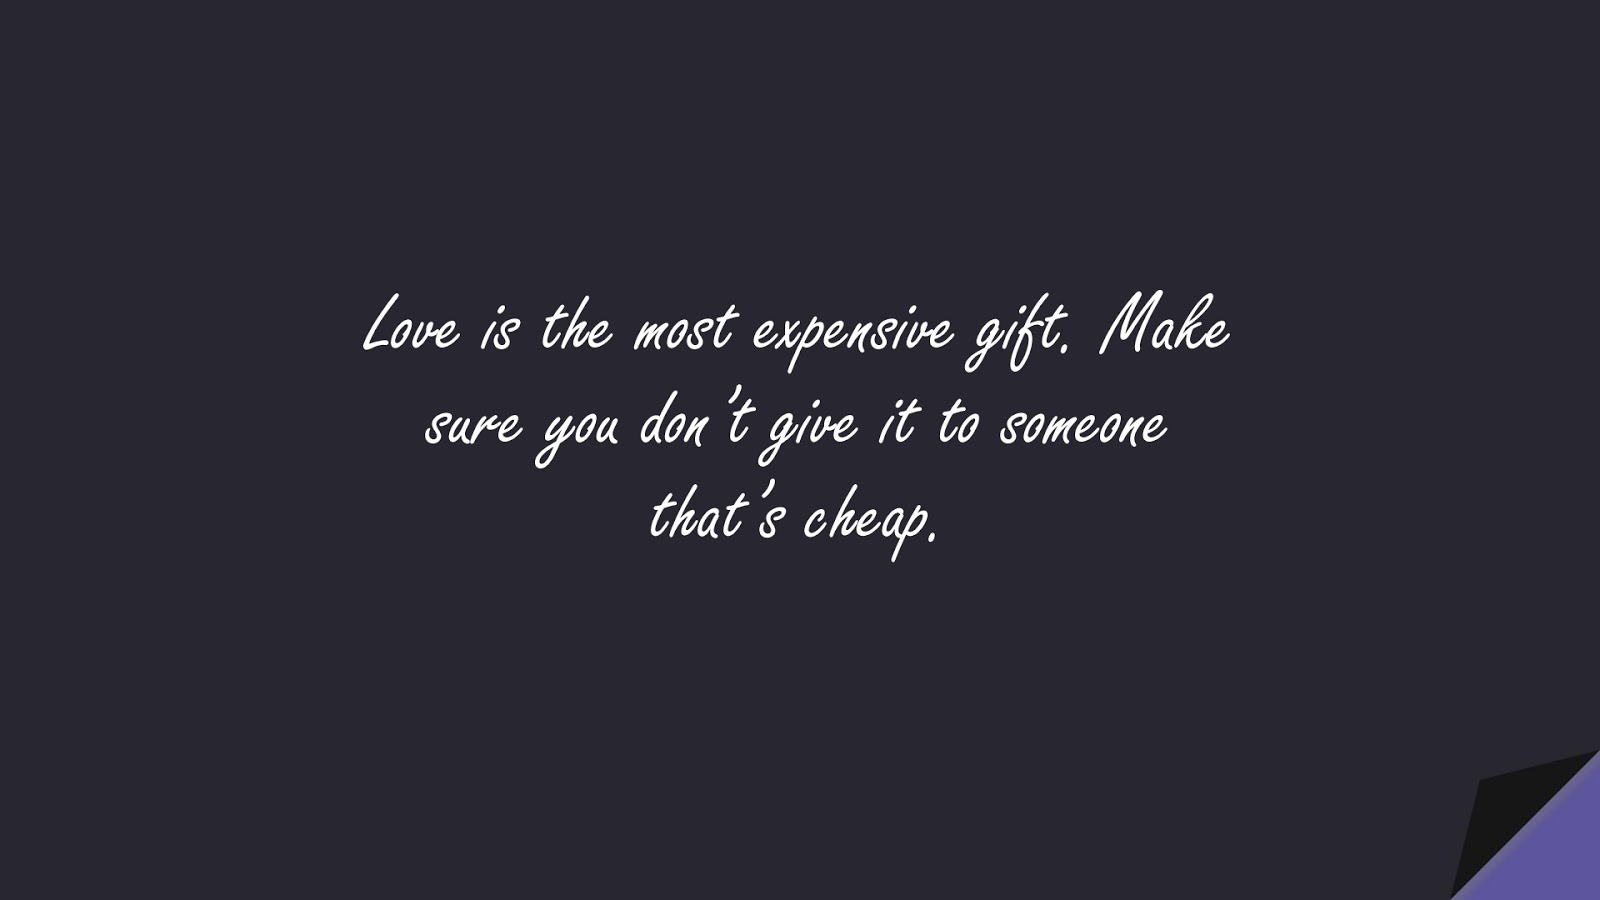 Love is the most expensive gift. Make sure you don't give it to someone that's cheap.FALSE